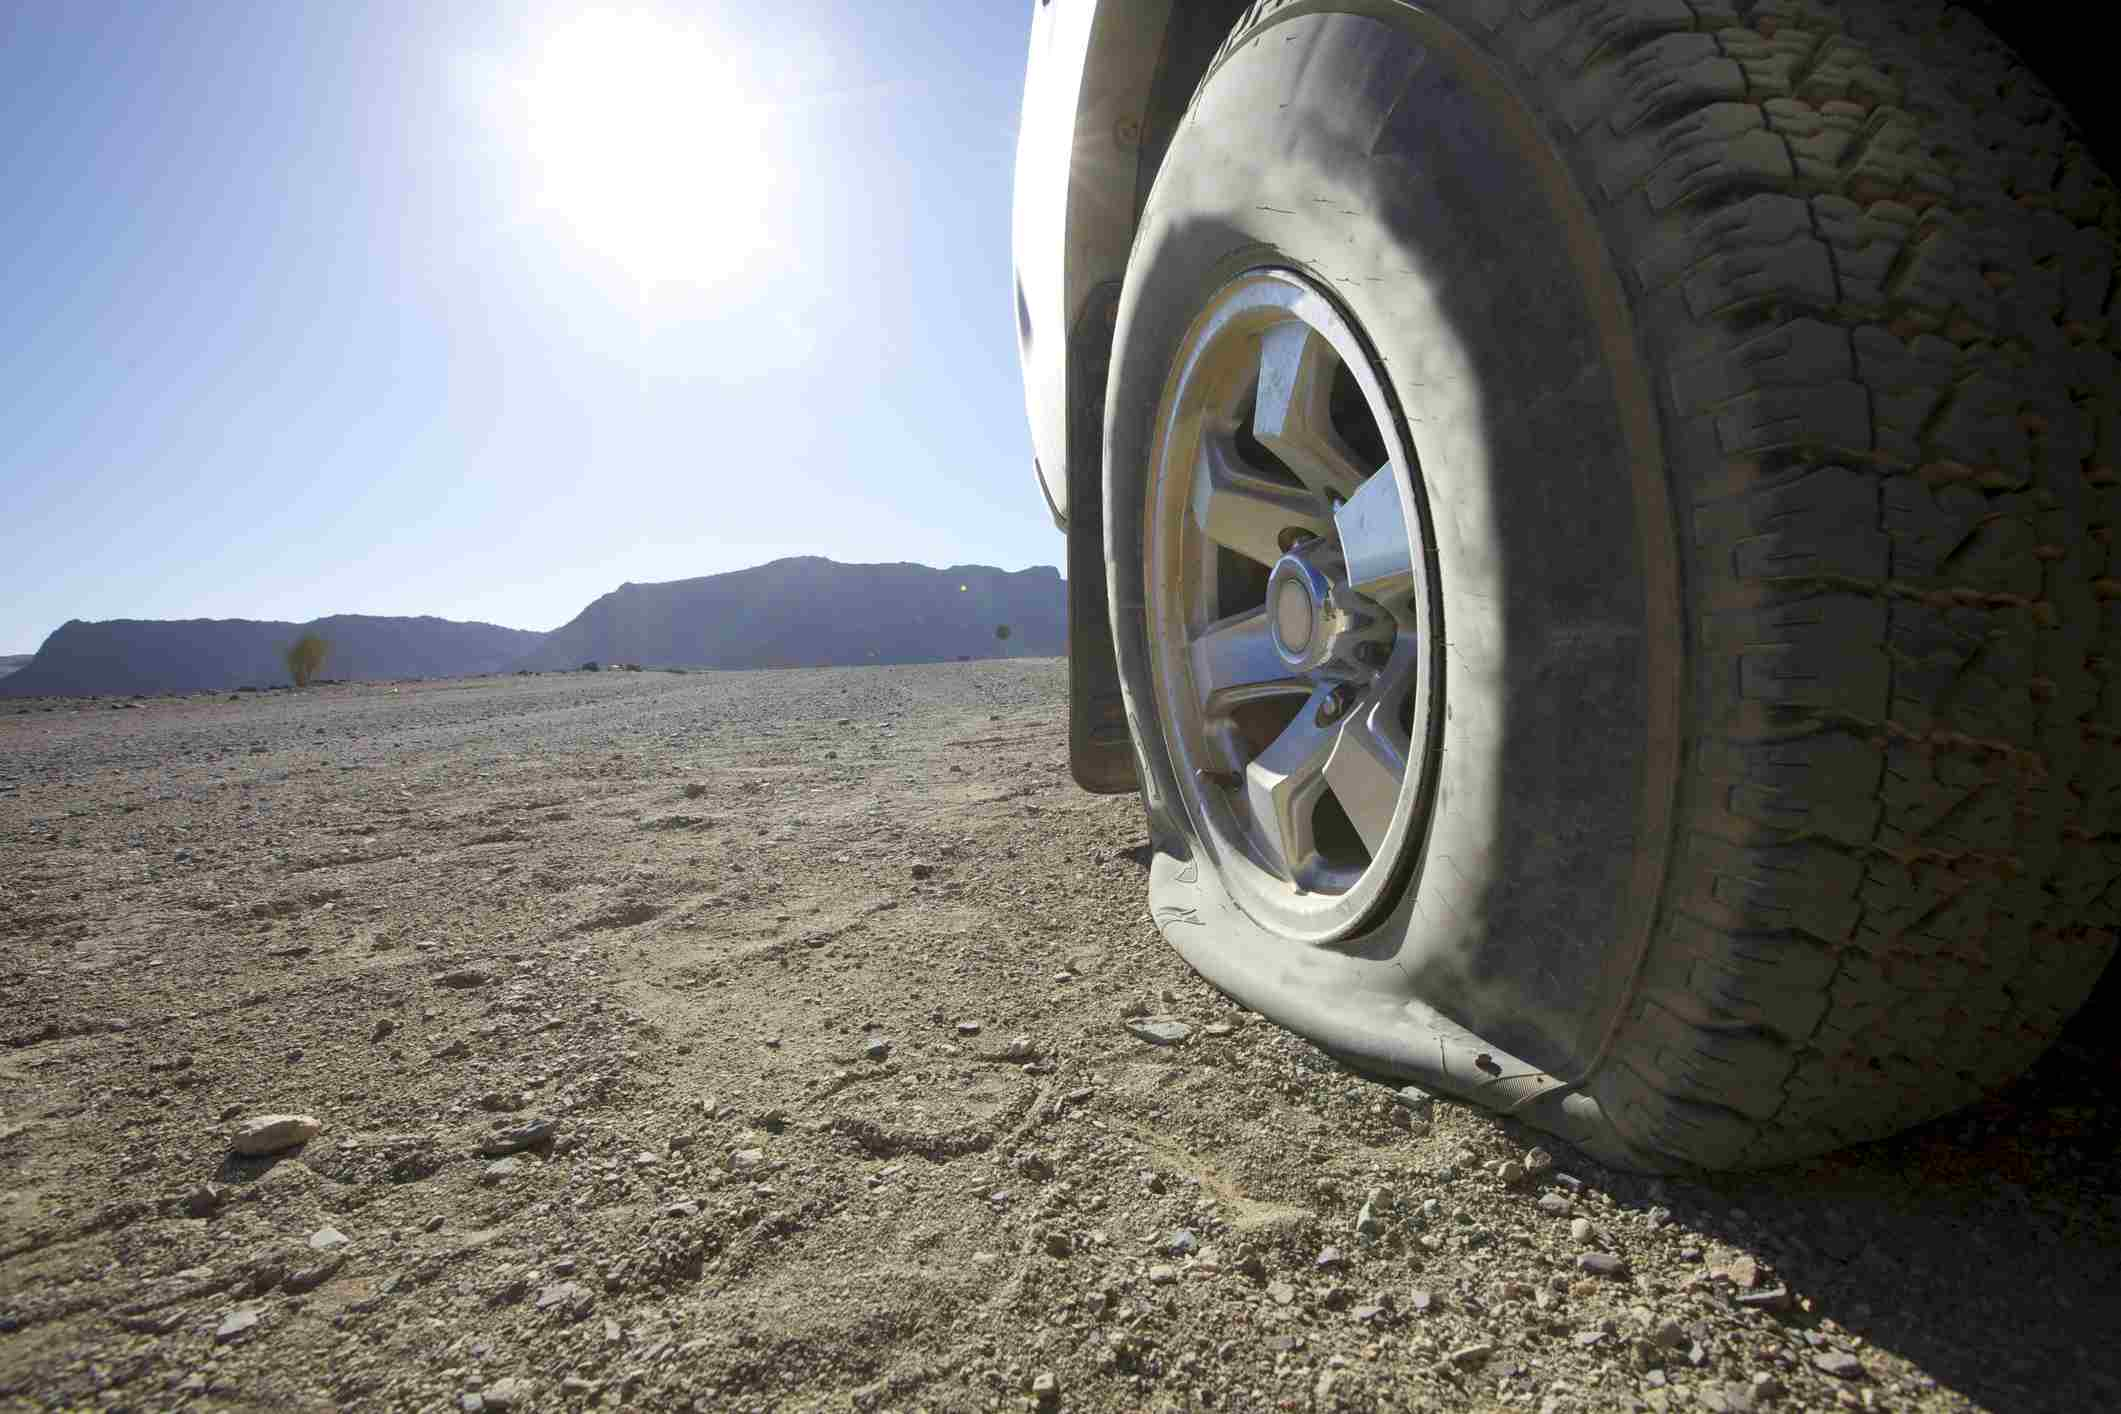 A low angle view of a vehicles flat tyre in the desert